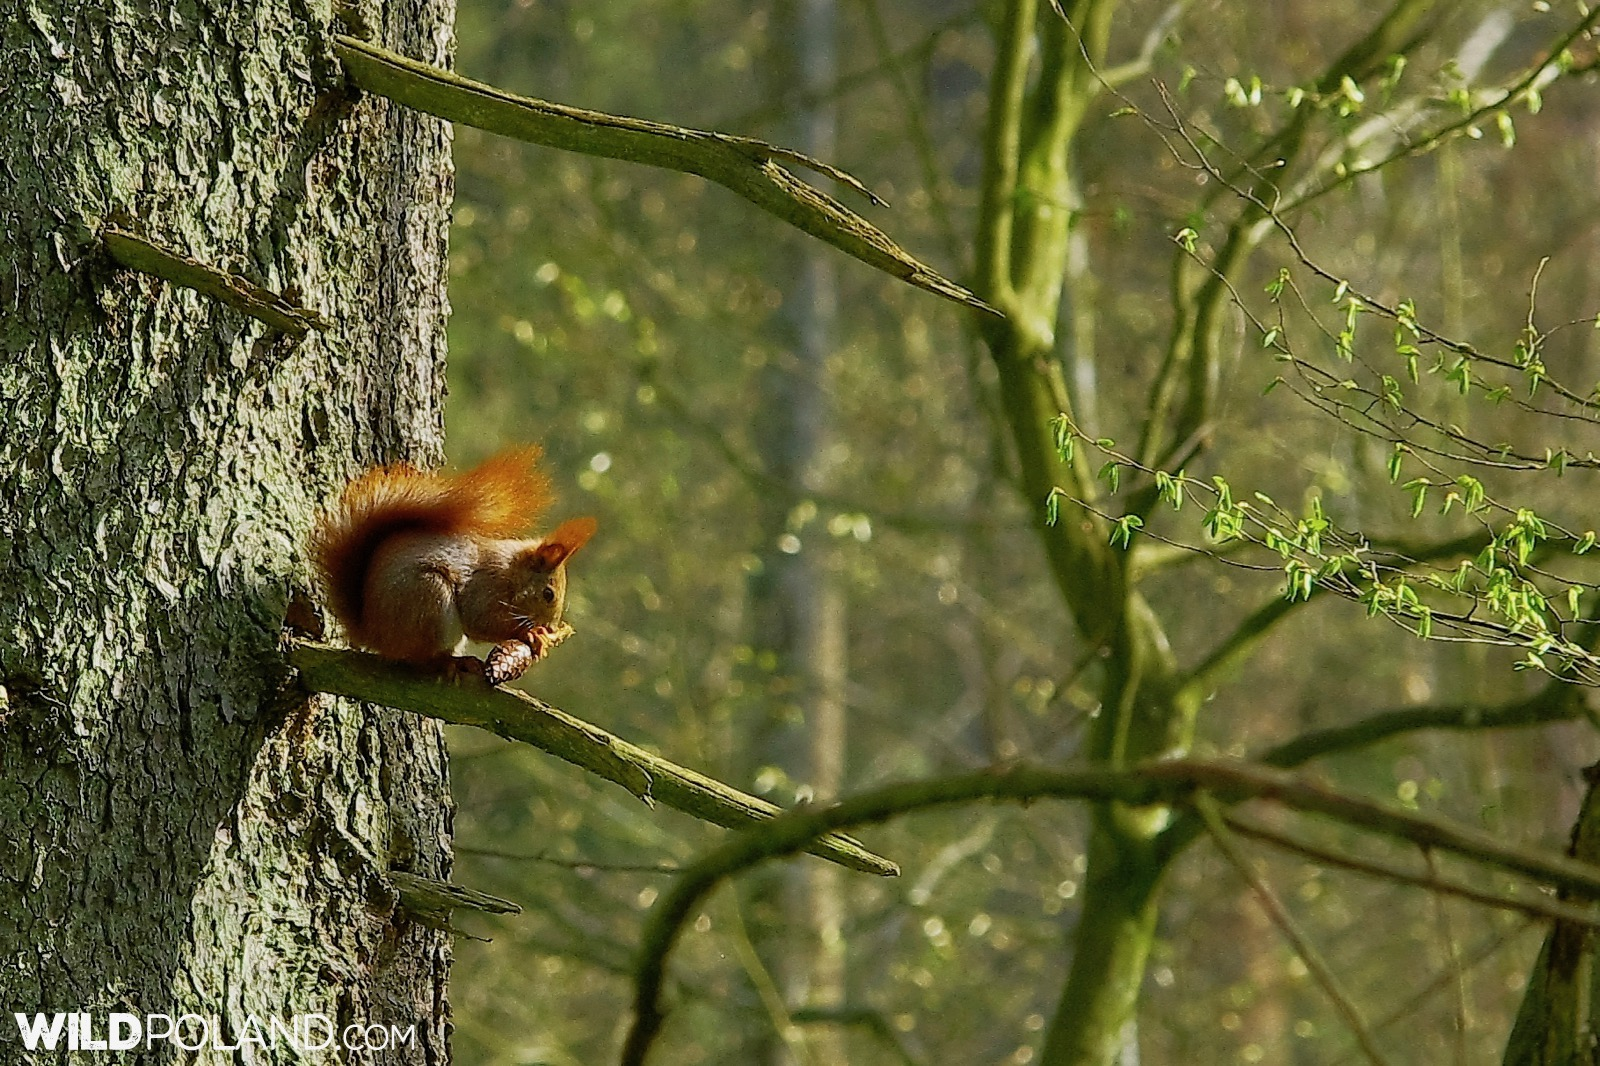 Red Squirrel in the Białowieża Forest, photo by Andrzej Petryna